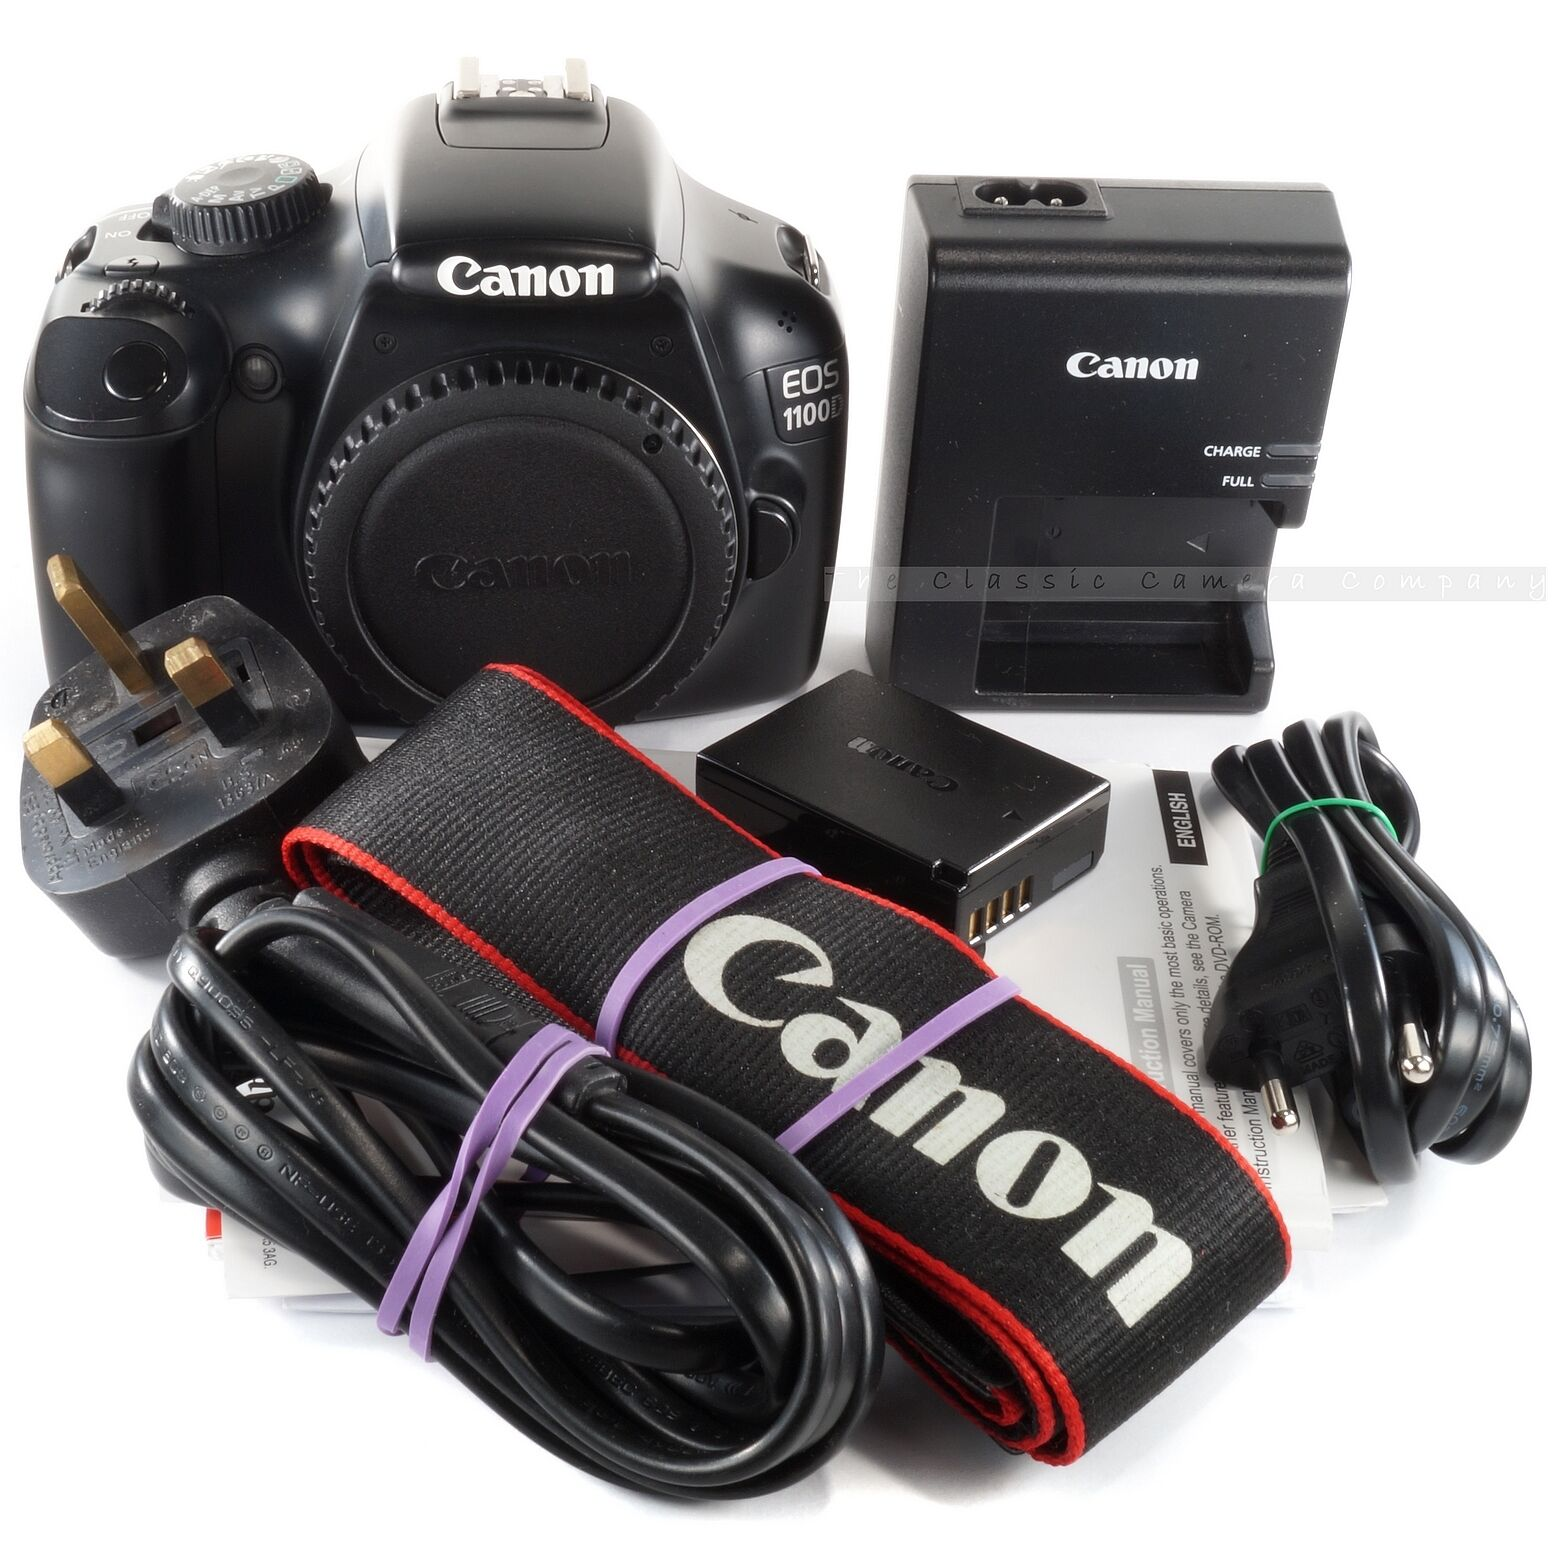 canon eos 1100d body only 12 2 mp mega pixels dslr. Black Bedroom Furniture Sets. Home Design Ideas